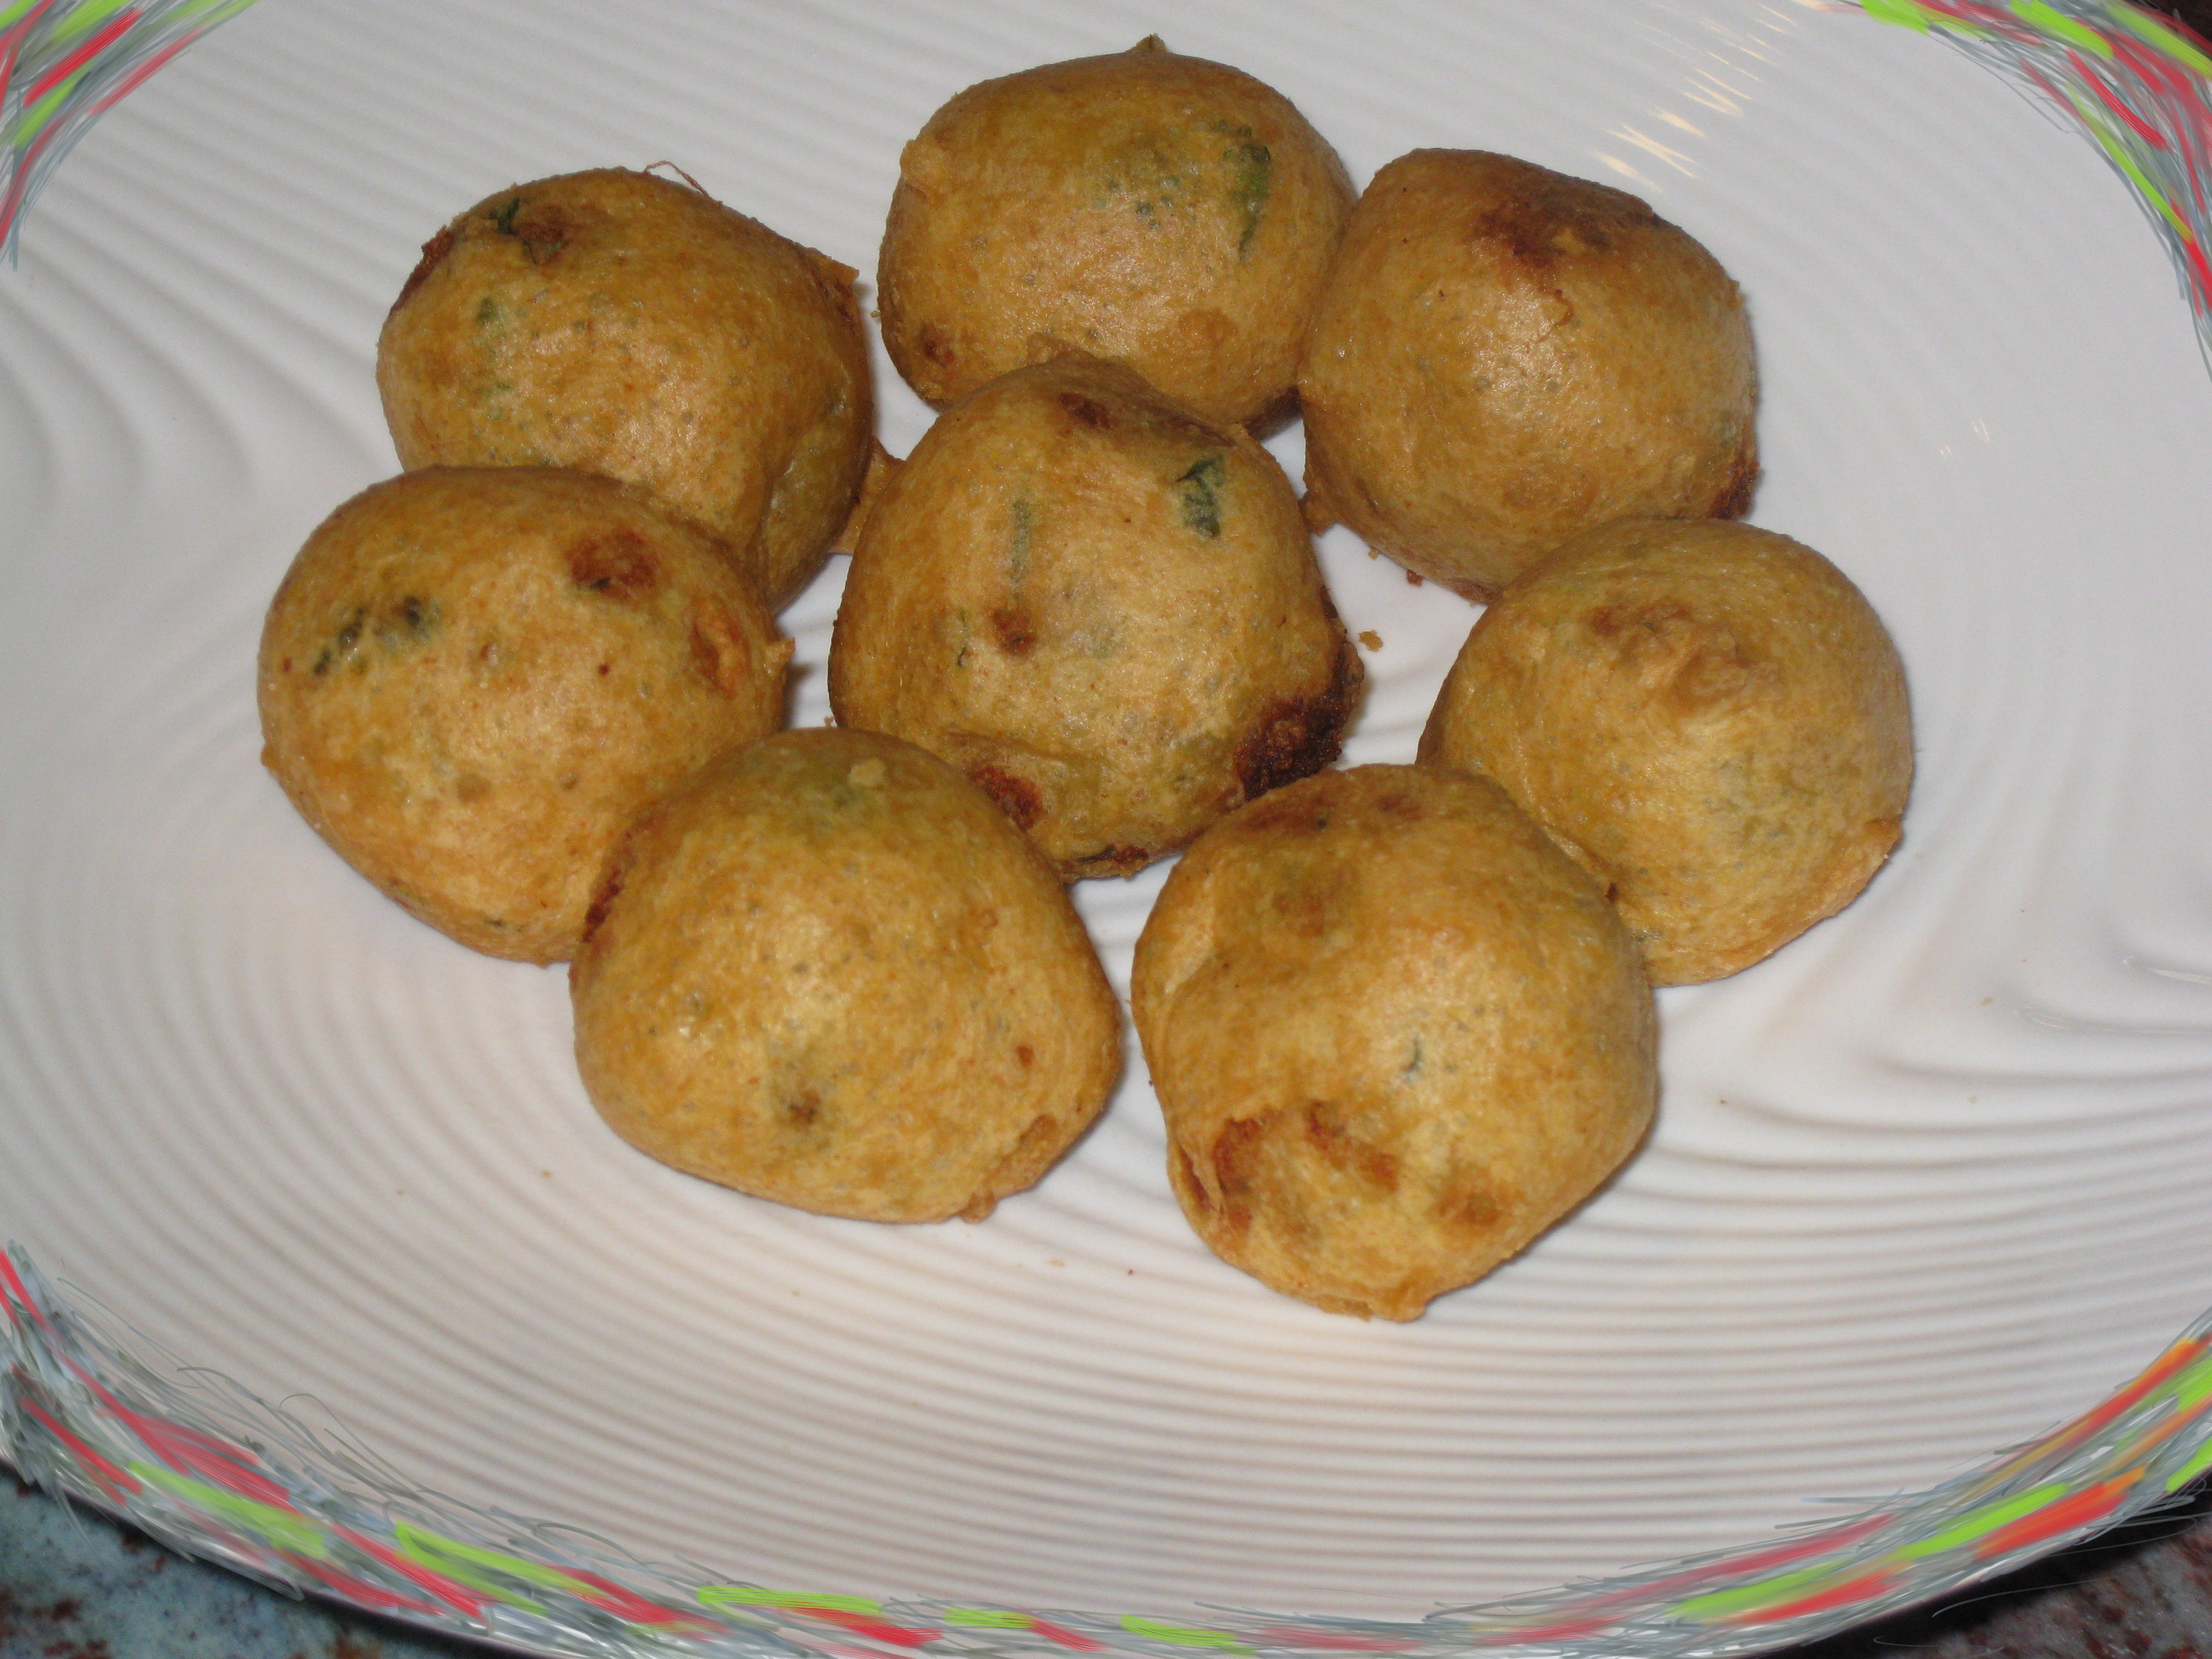 POTATO WADAS (spicy potato balls)